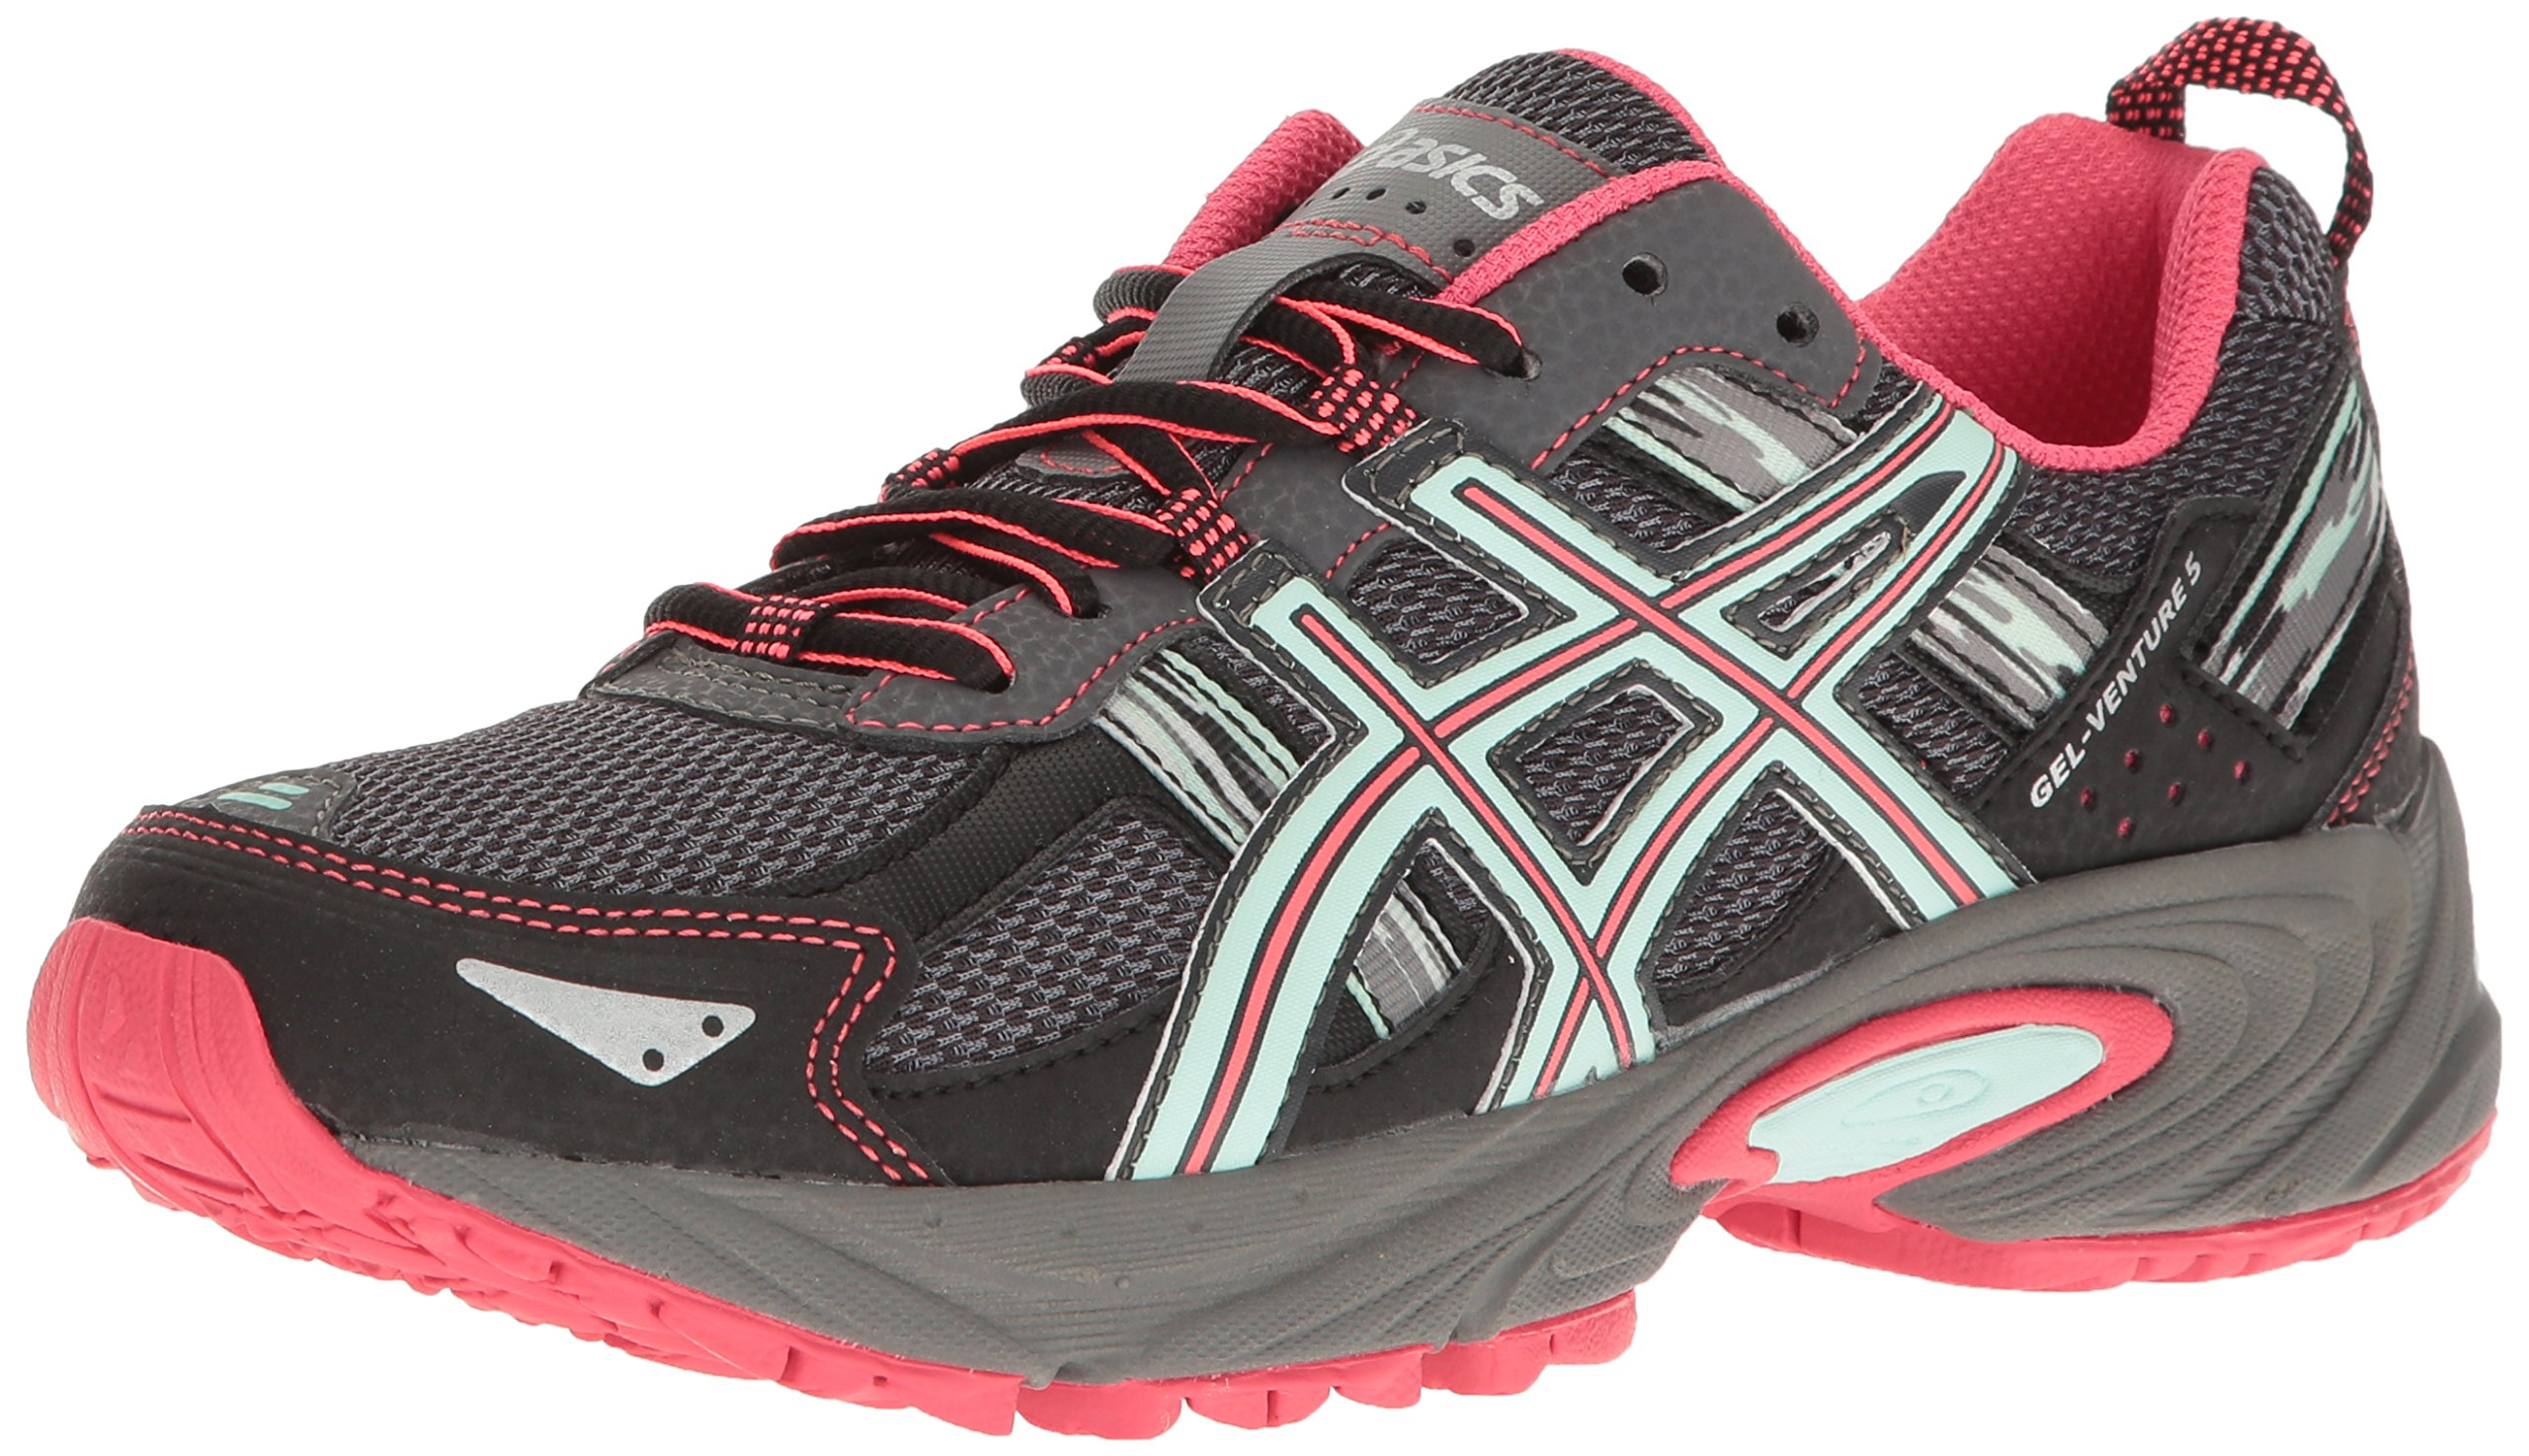 ASICS Women's Gel-Venture 5 Trail Runner, Carbon/Diva Pink/Bay, 9 M US by ASICS